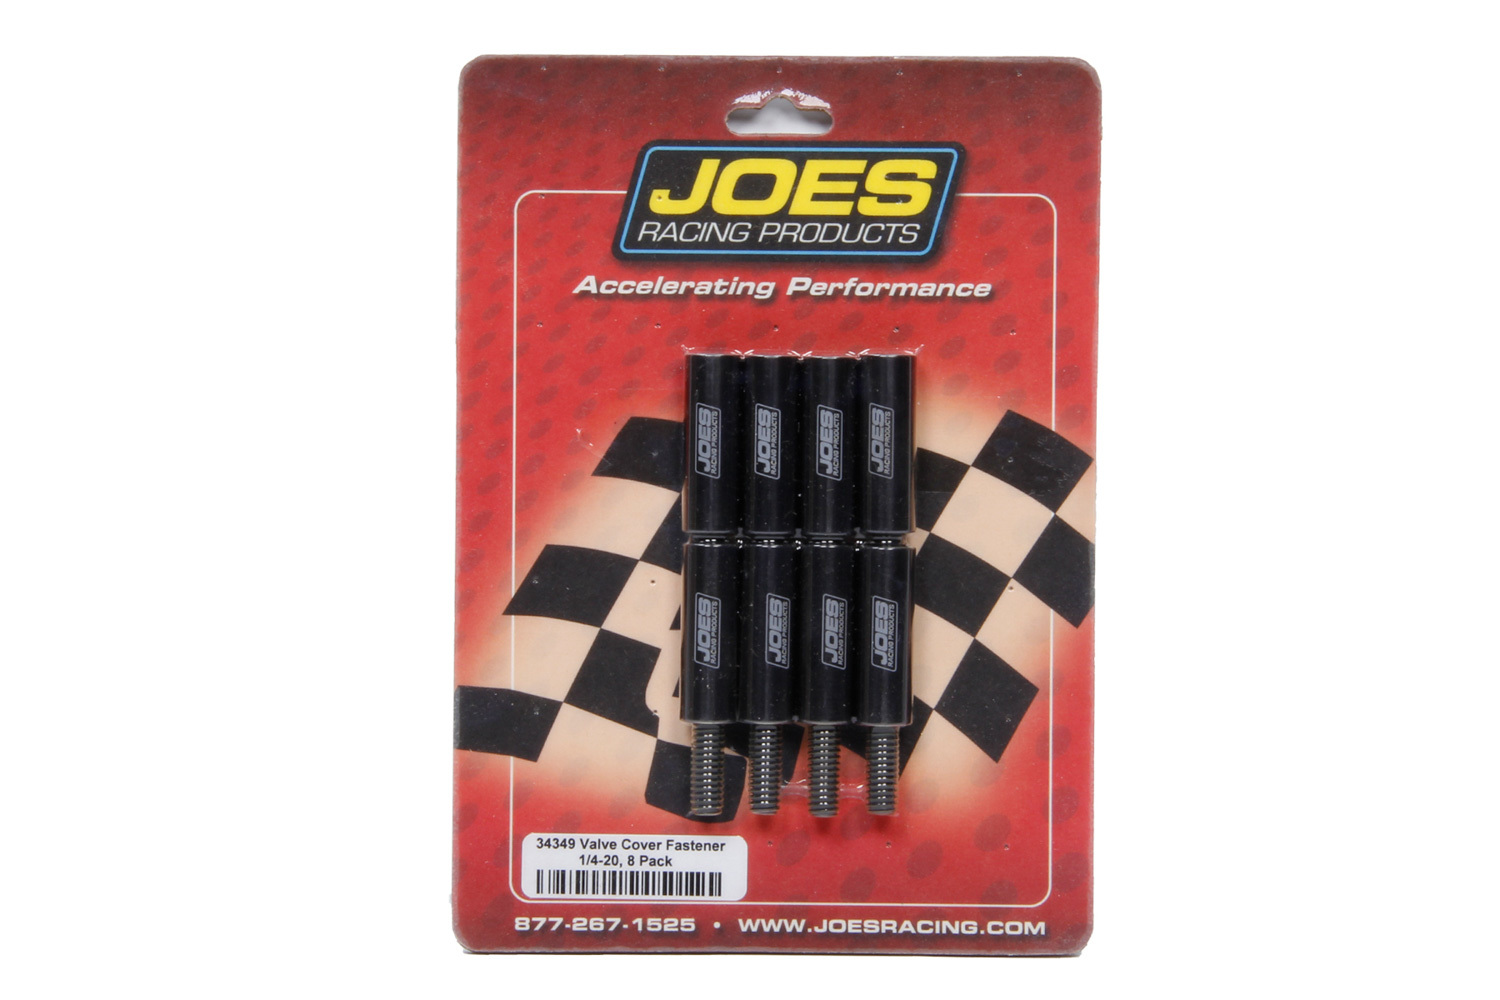 Joes Racing Products 34349 Valve Cover Fastener, Stud, 1/4-20 in Thread, 1.500 in Long, Nuts Included, Aluminum, Black Anodized, Set of 8